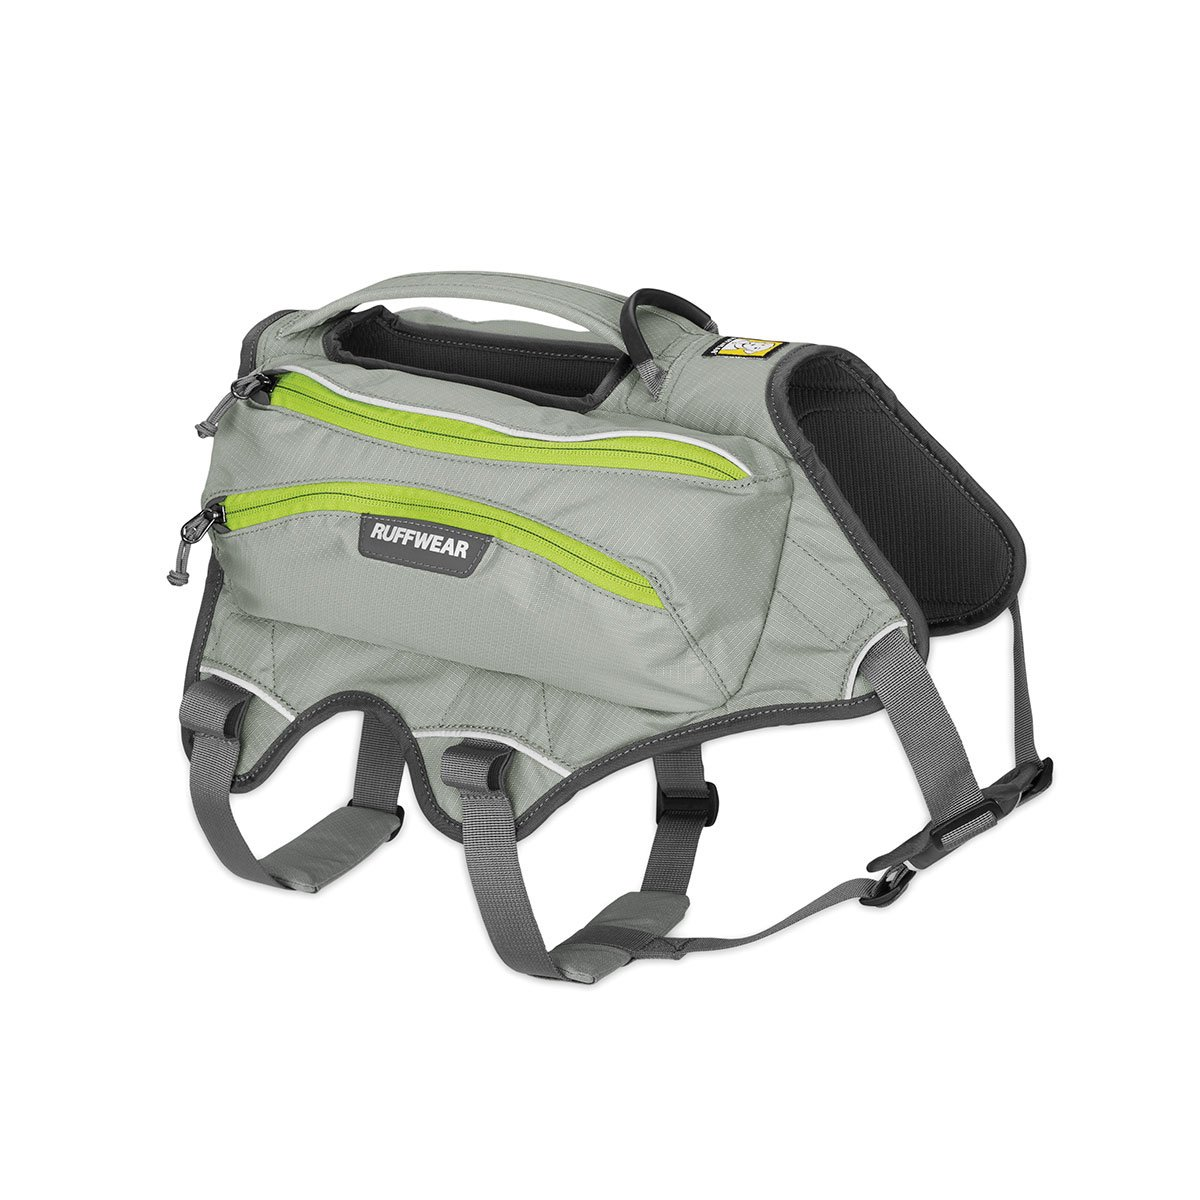 RUFFWEAR - Singletrak Low-Profile Hydration Pack for Dogs Cloudburst Gray Medium 50301-045M